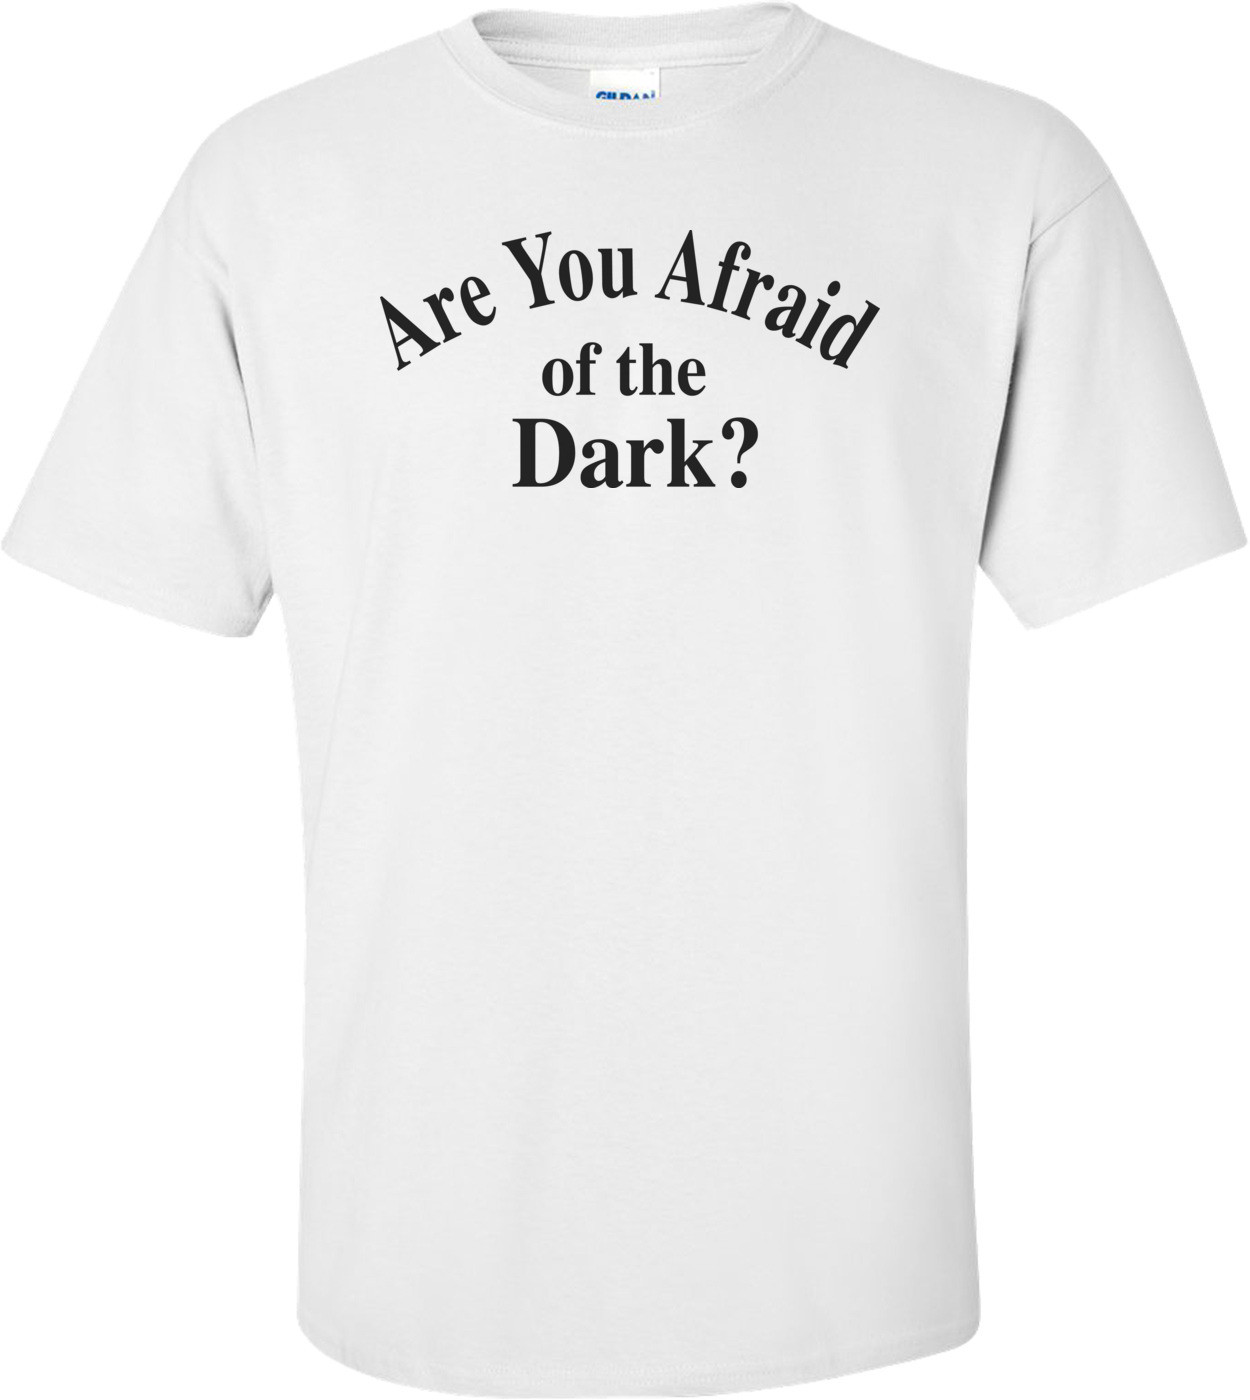 Are You Afraid Of The Dark? T-shirt